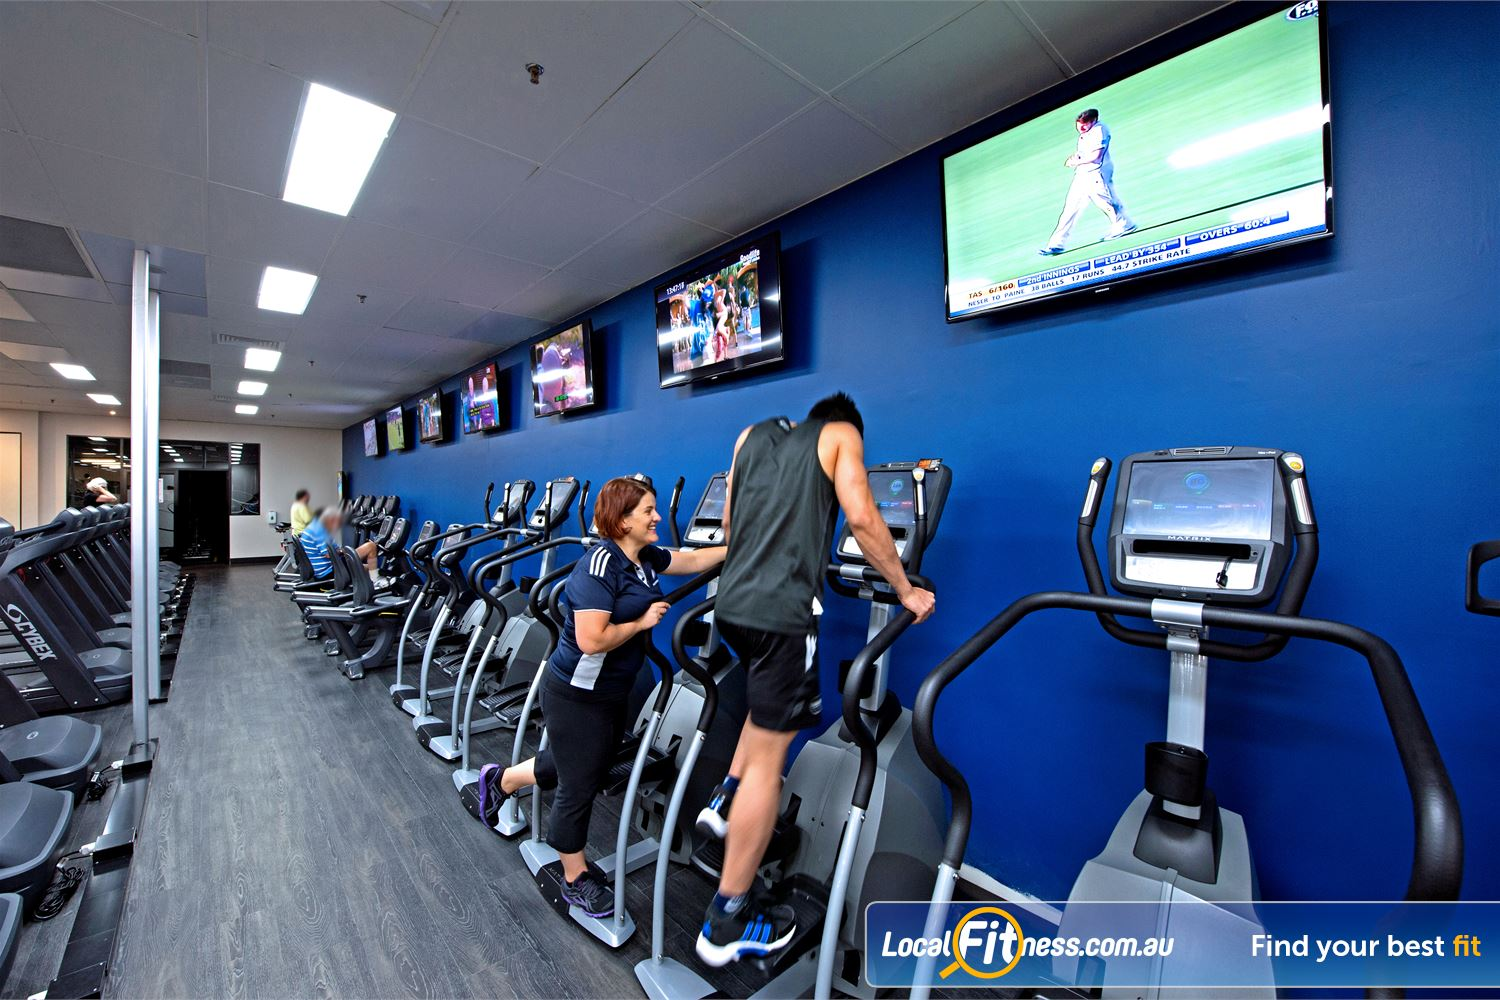 Goodlife Health Clubs Cottesloe Tune into your favourite shows on your personalised LCD screen or cardio theatre.